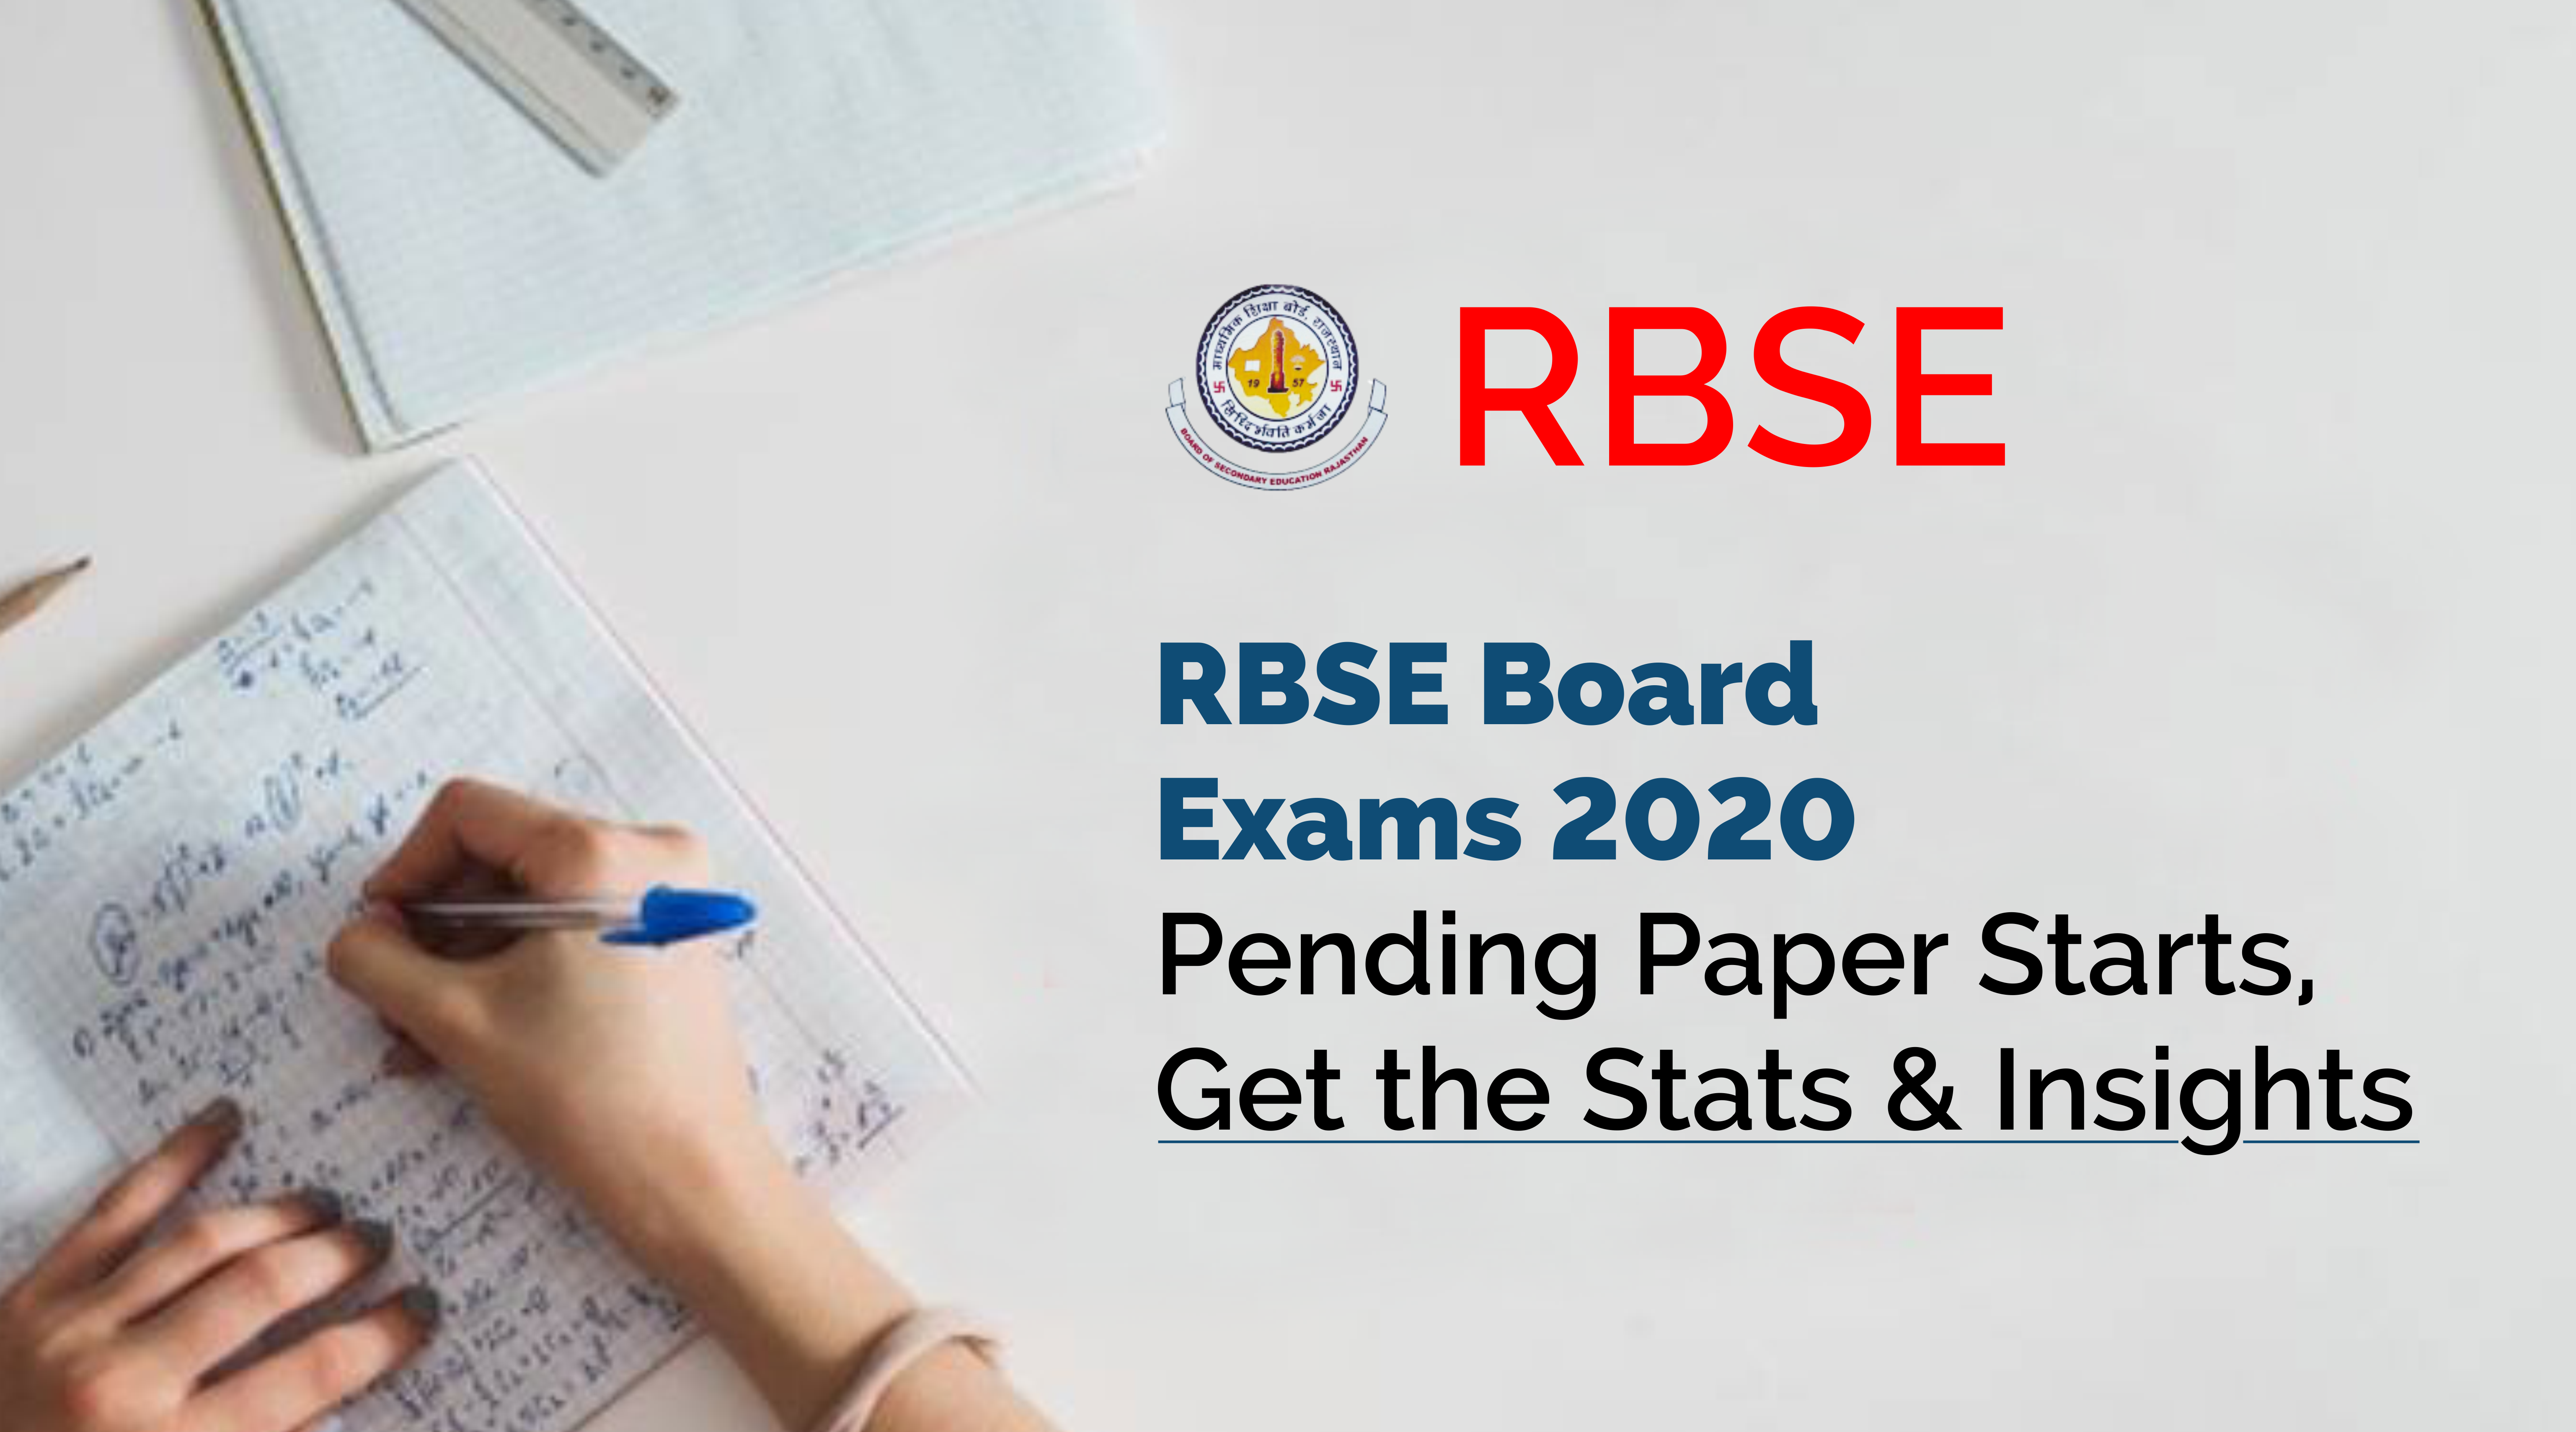 RBSE Board Exams 2020 Pending Paper Starts, Get the Stats & Insights